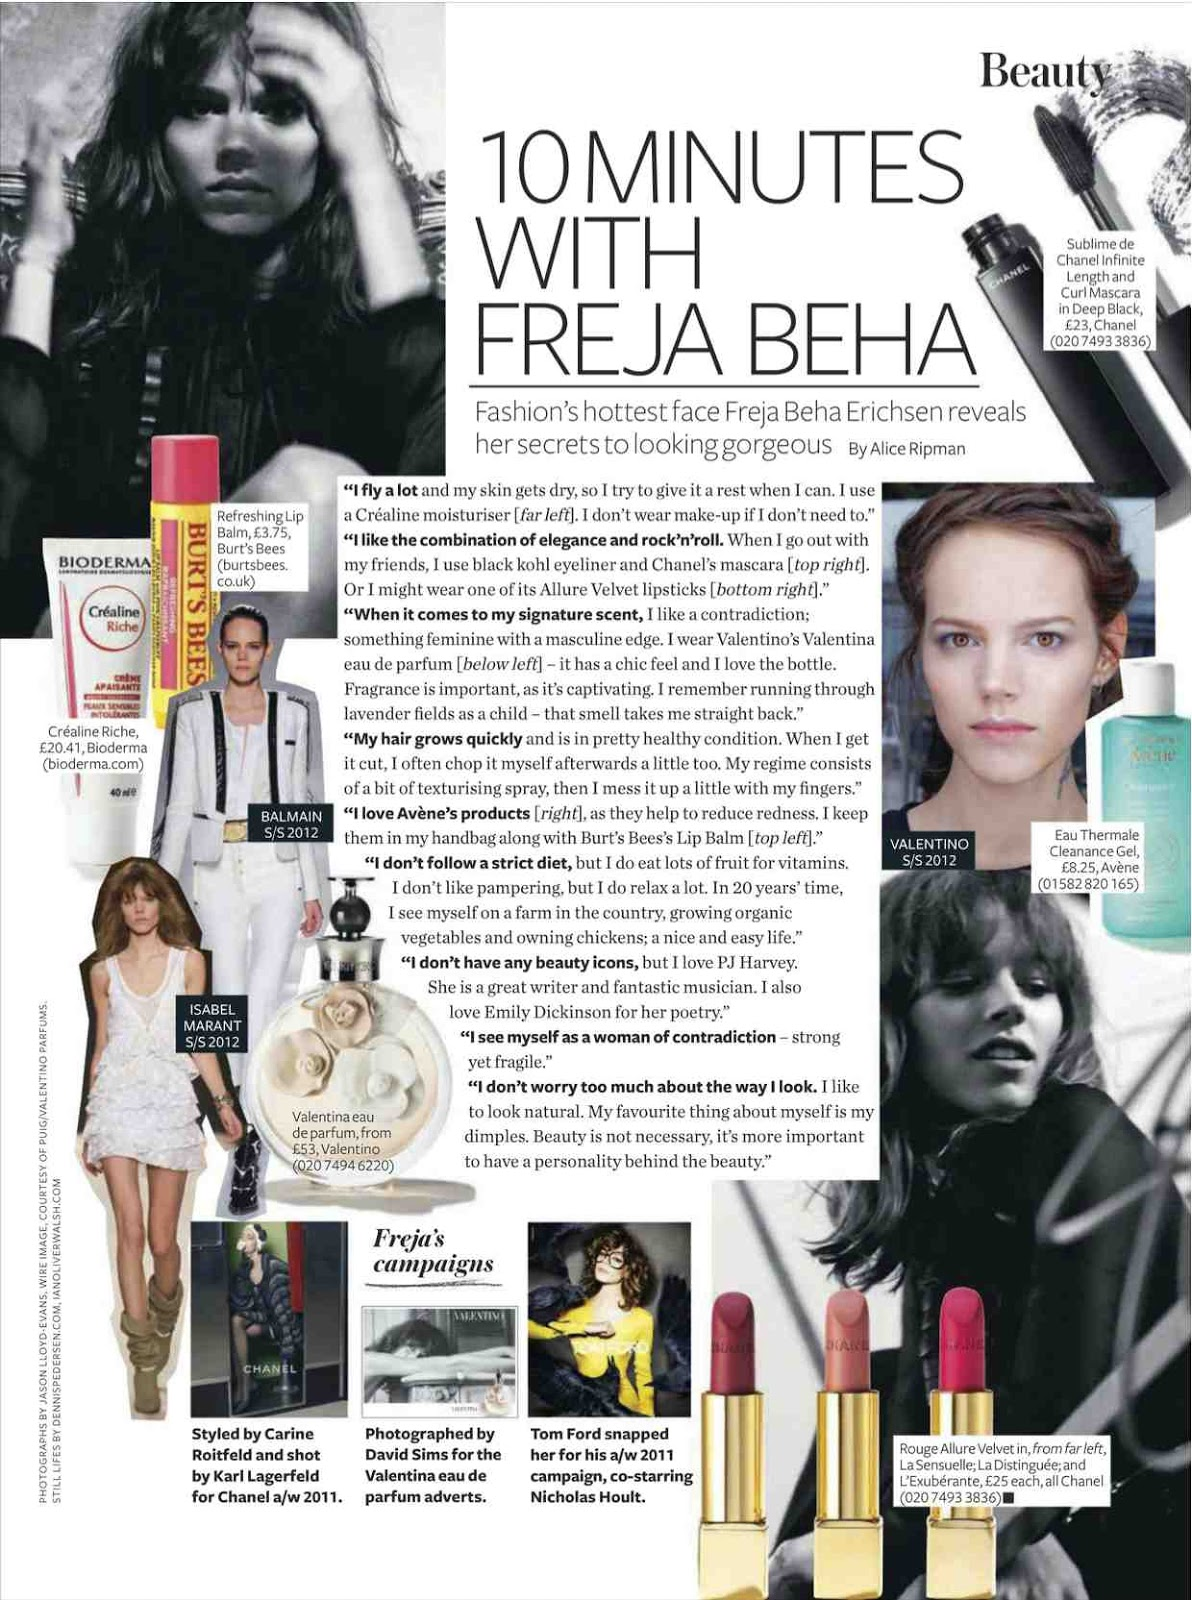 freja beha erichsen's beauty tips in InStyle UK june 2012